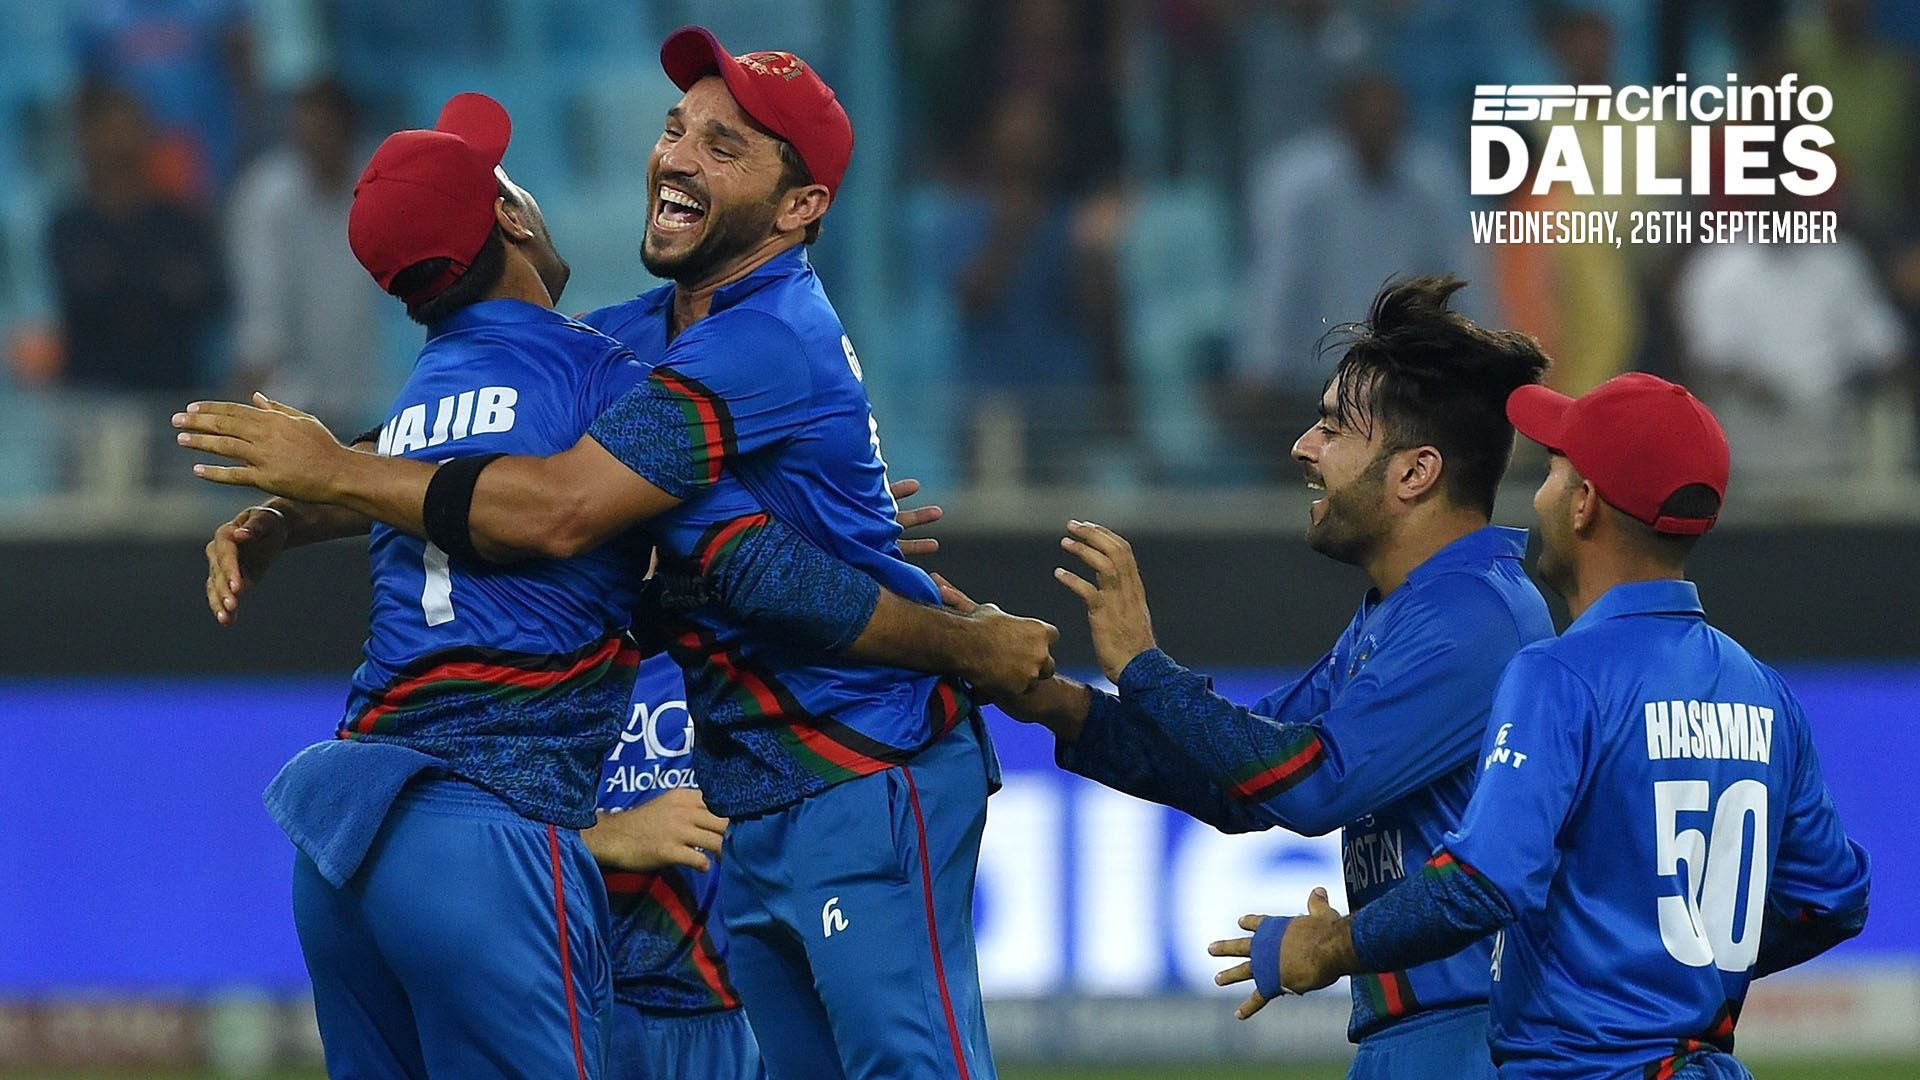 India and Afghanistan play out a thriller in the Asia Cup